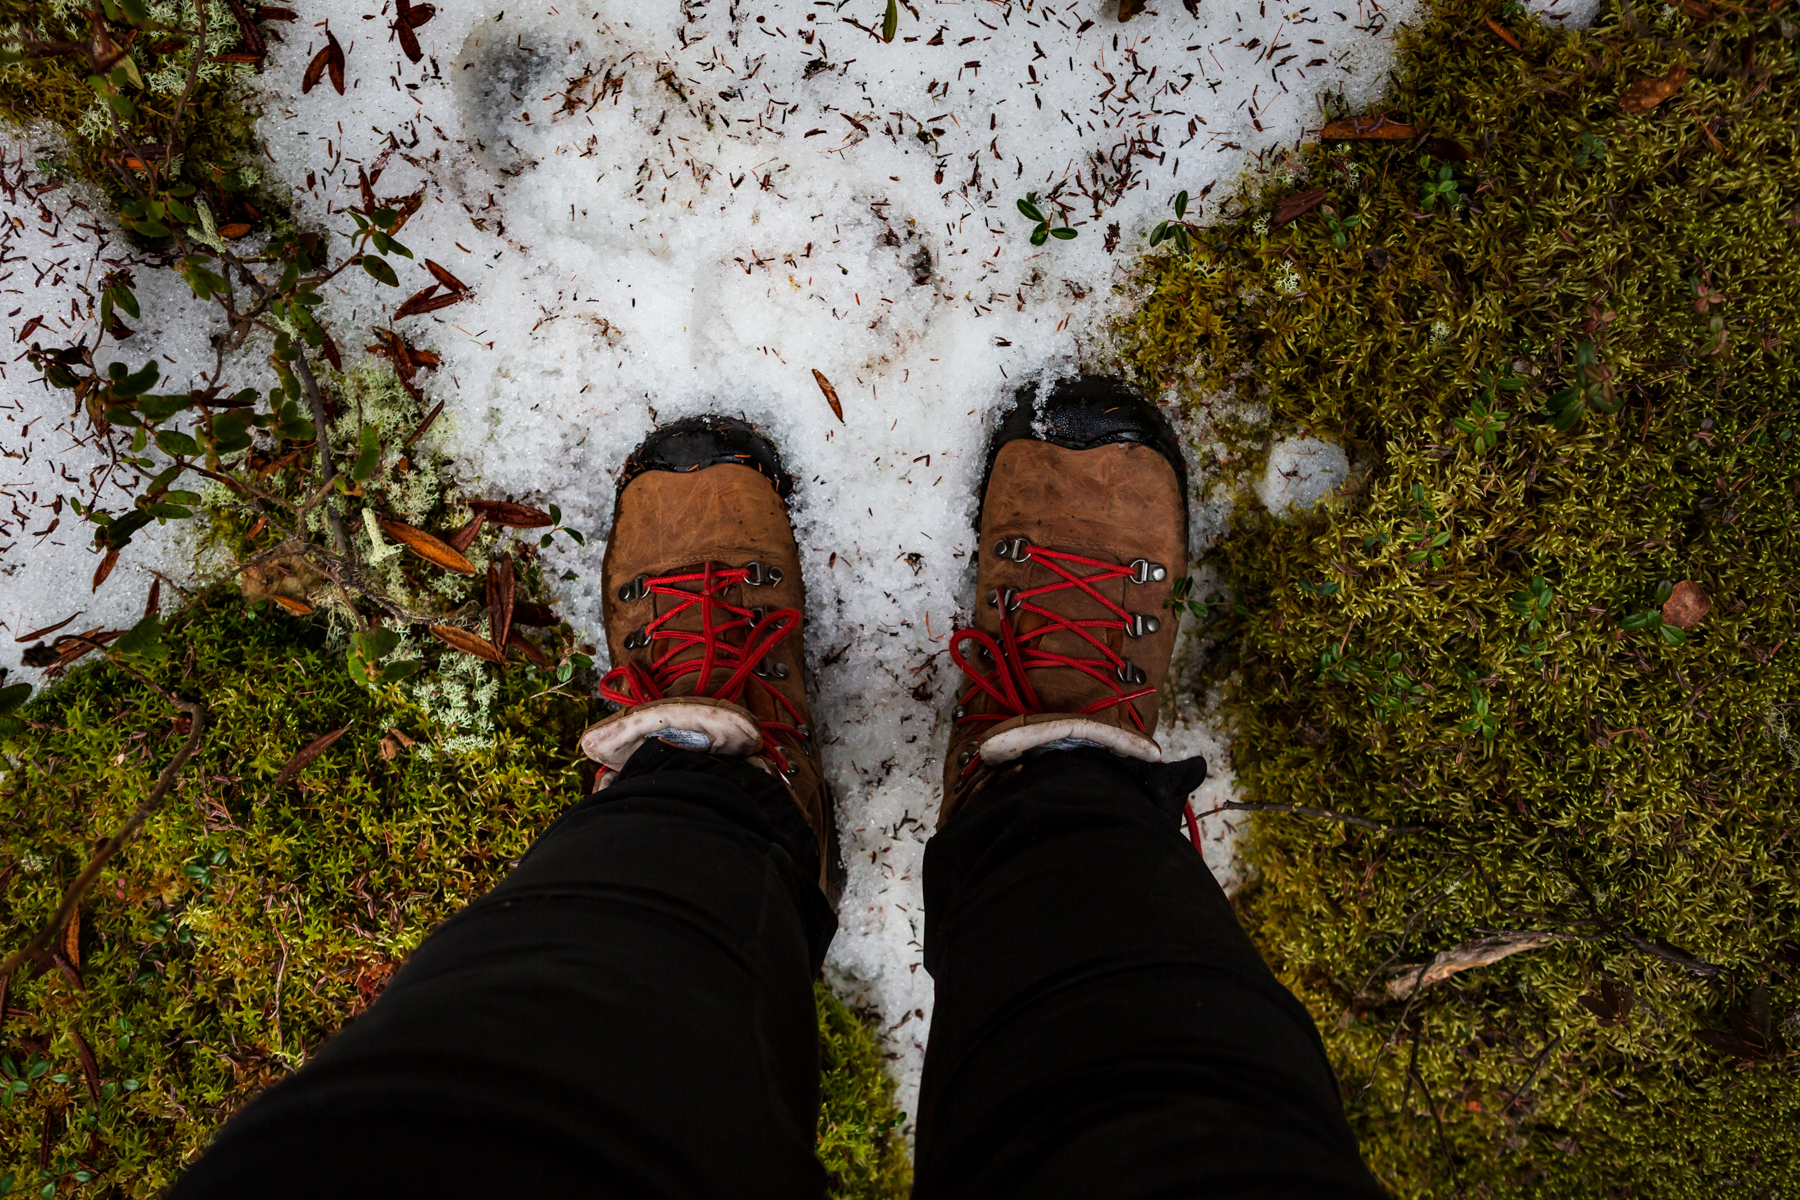 women (from knees down) in hiking boots standing on moss and snow as she is off-trail hiking